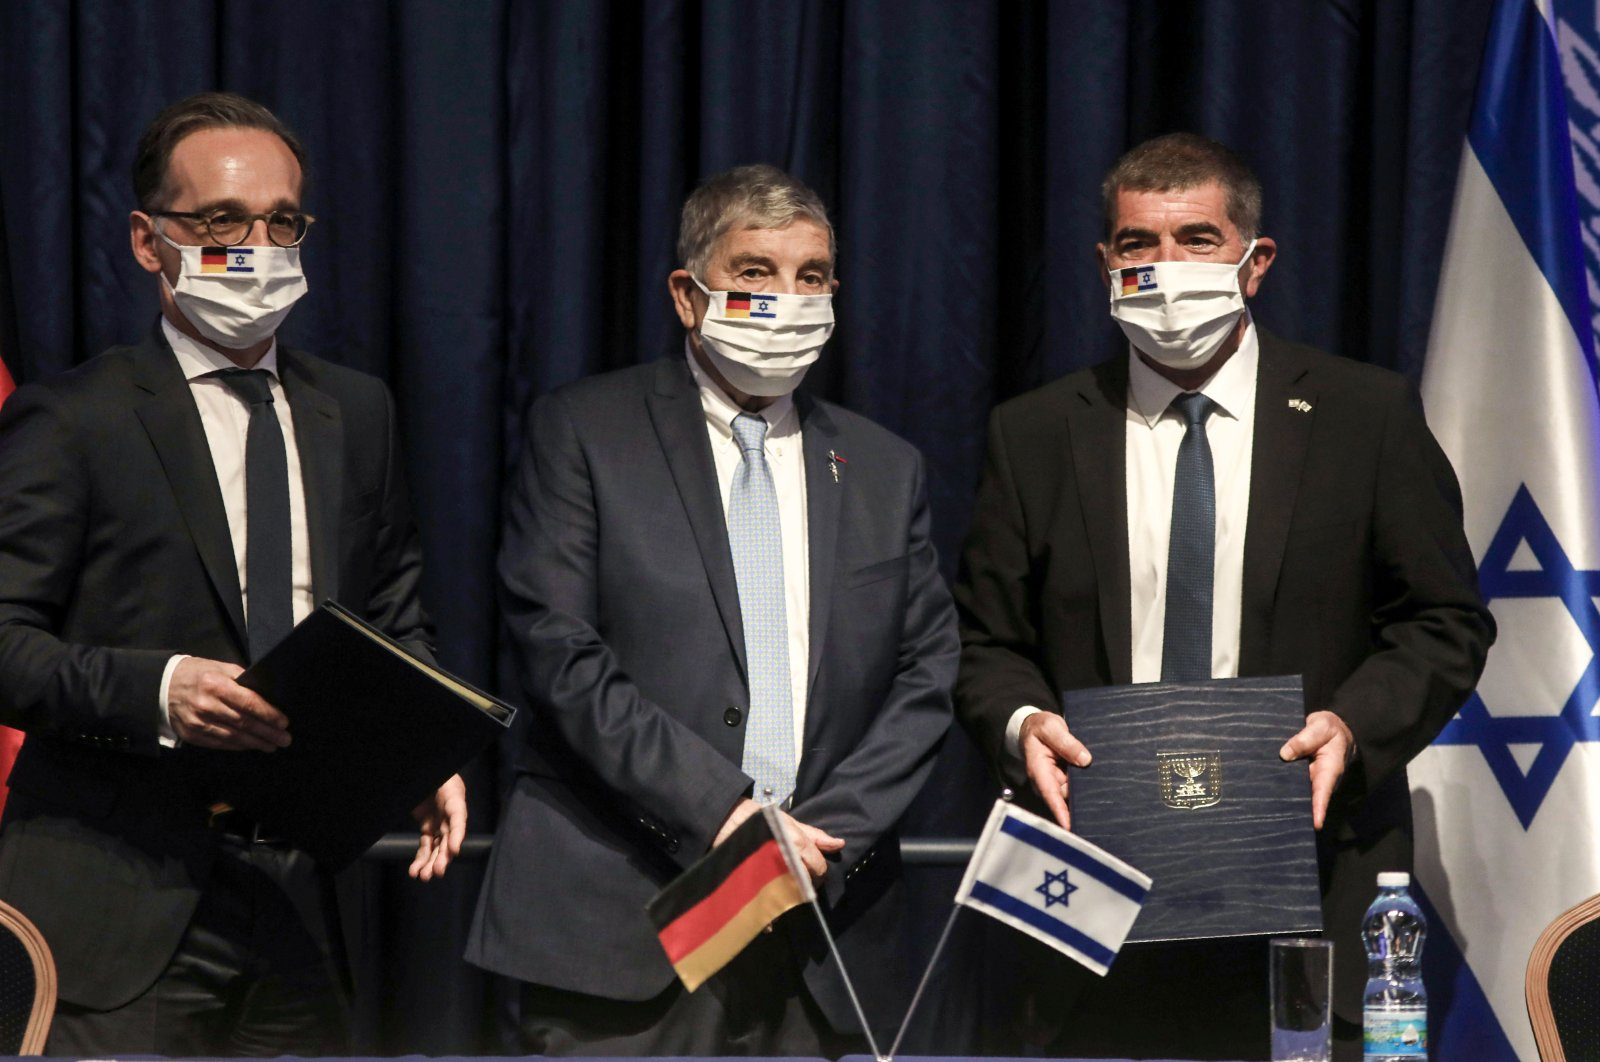 German Foreign Minister Heiko Maas (L), chairman of the Yad Vashem Holocaust Remembrance Center Avner Shalev (C) and Israeli Foreign Minister Gabi Ashkenazi (R) pose for a picture together after signing an agreement at the ministry headquarters in Jerusalem, Israel, June 10, 2020. (AFP Photo)